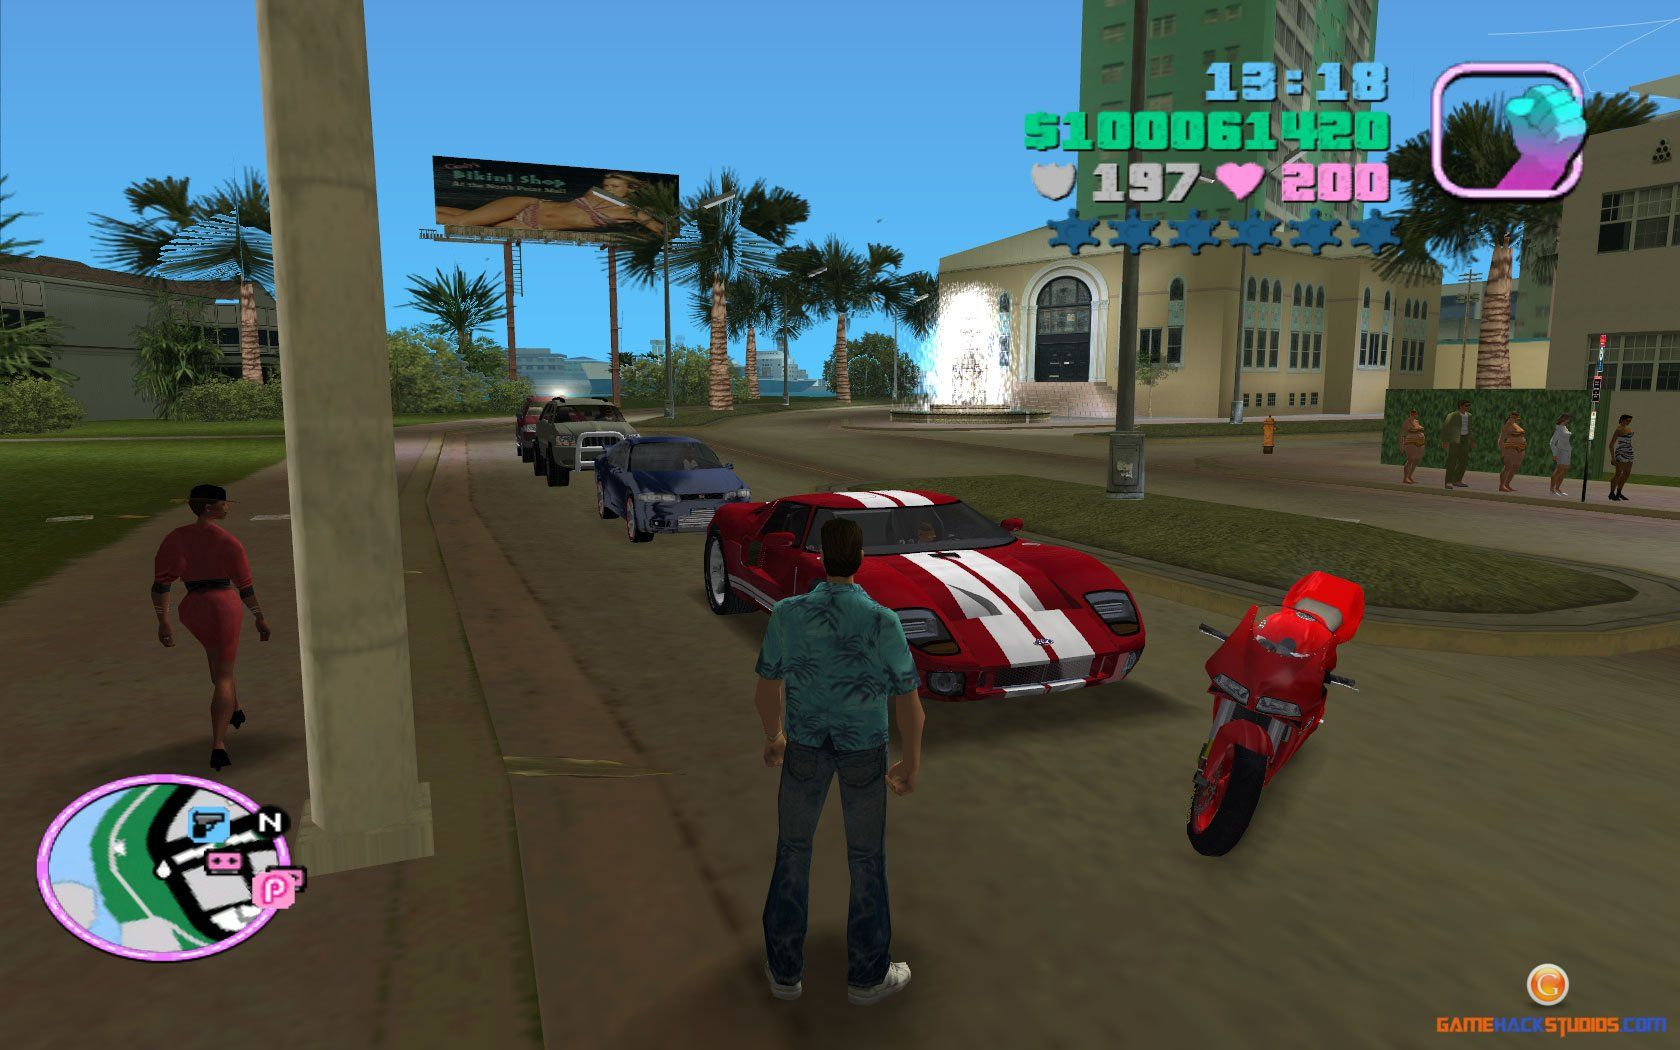 gta vice city game new version free download | rpovoutimmom